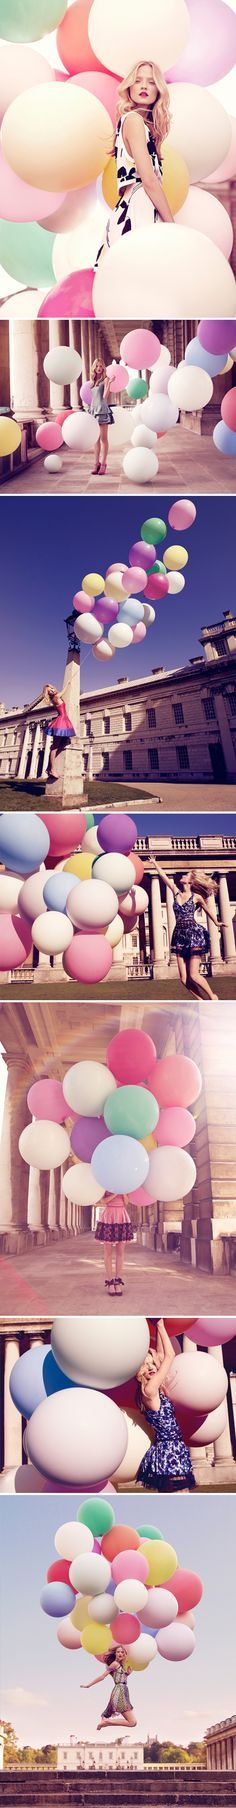 99 Luftballons | Zuckermonarchie Blog